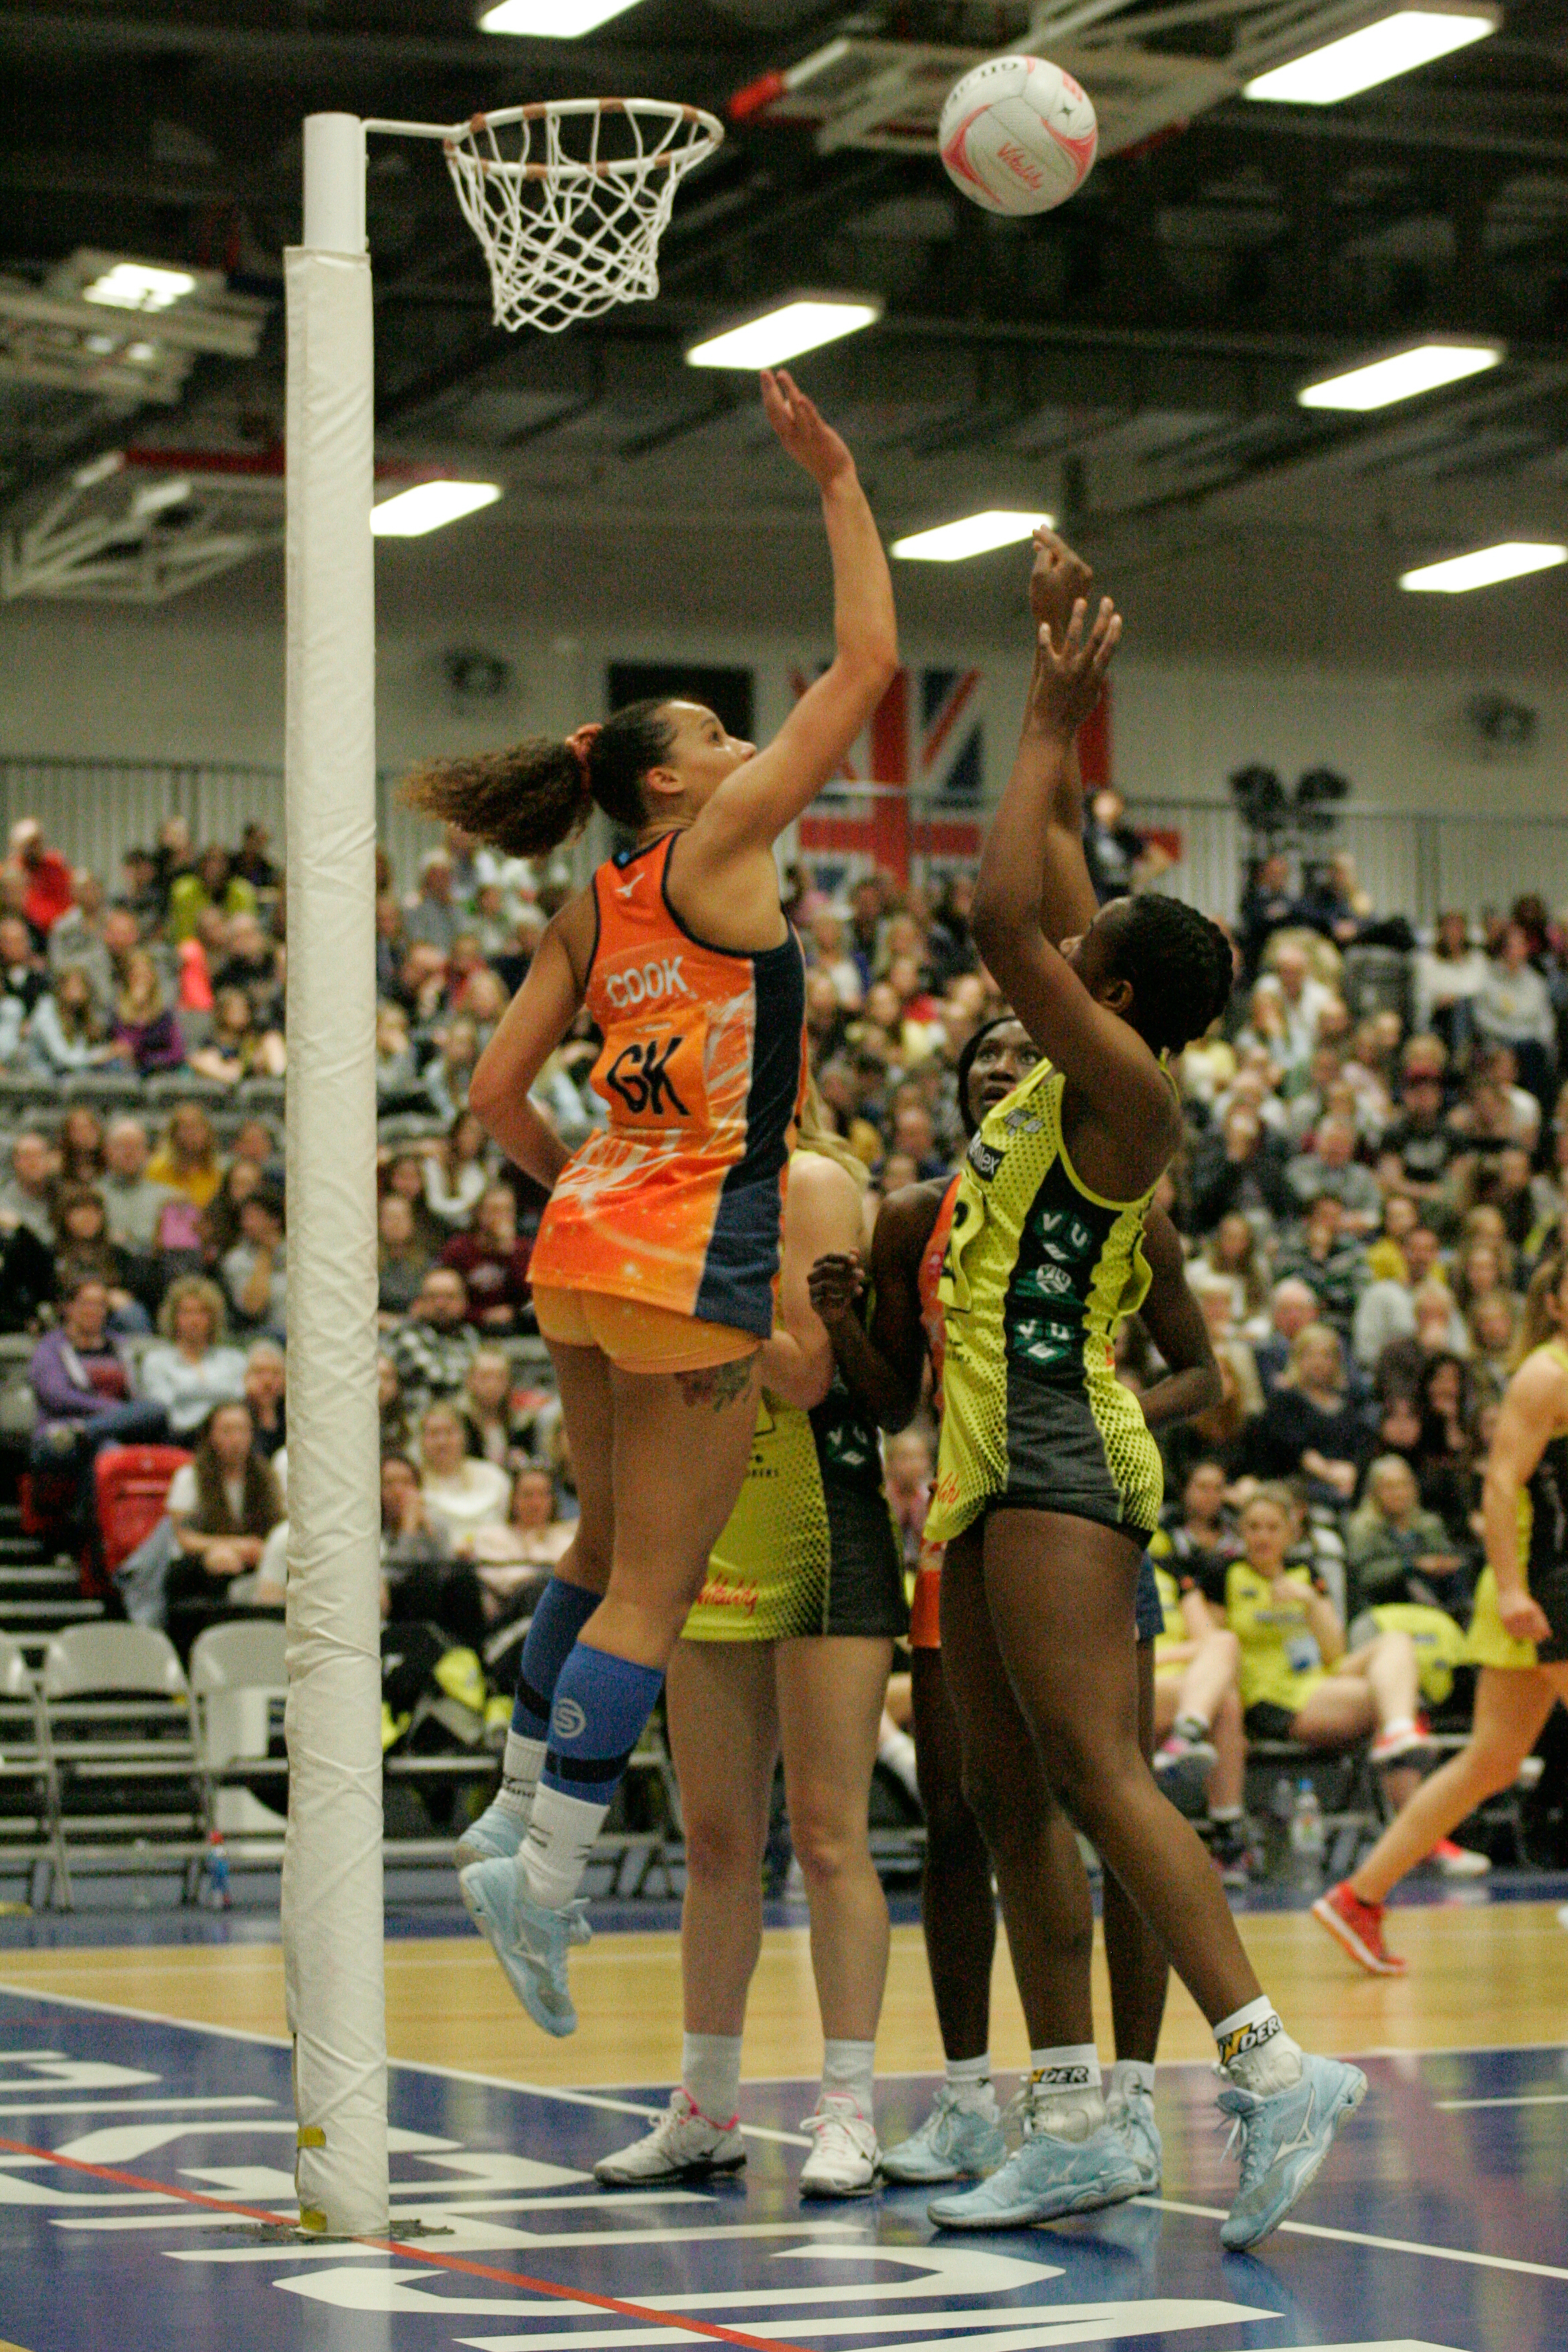 Severn Stars' Sam Cook (left) defends a shot in their win at Manchester. Picture: MARK PRITCHARD